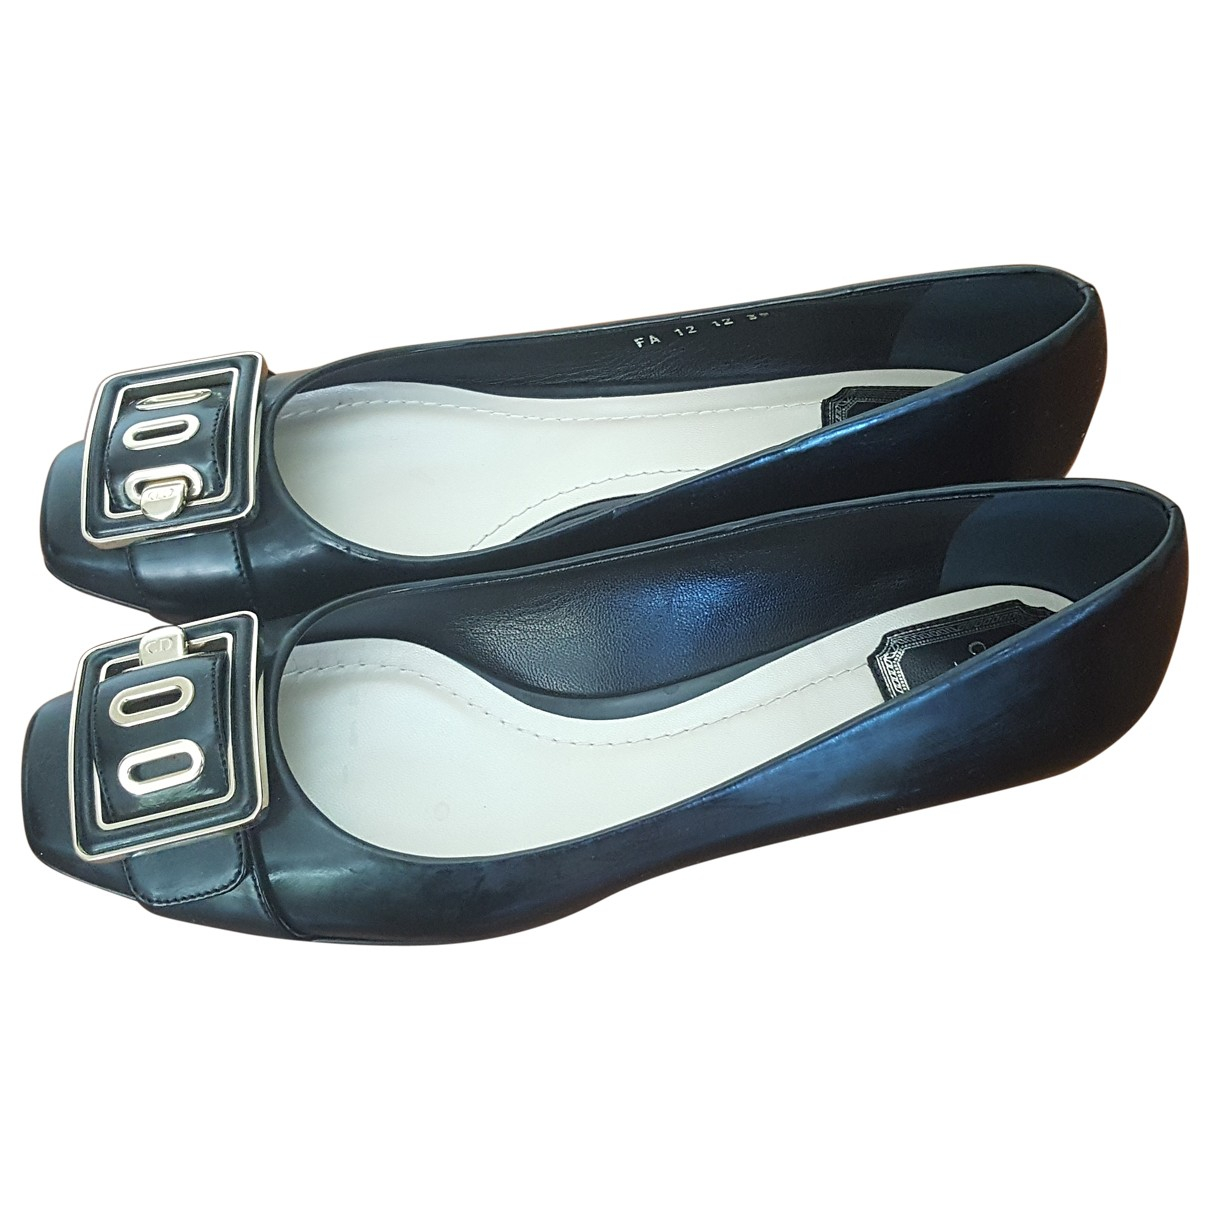 Dior \N Black Patent leather Ballet flats for Women 39 EU